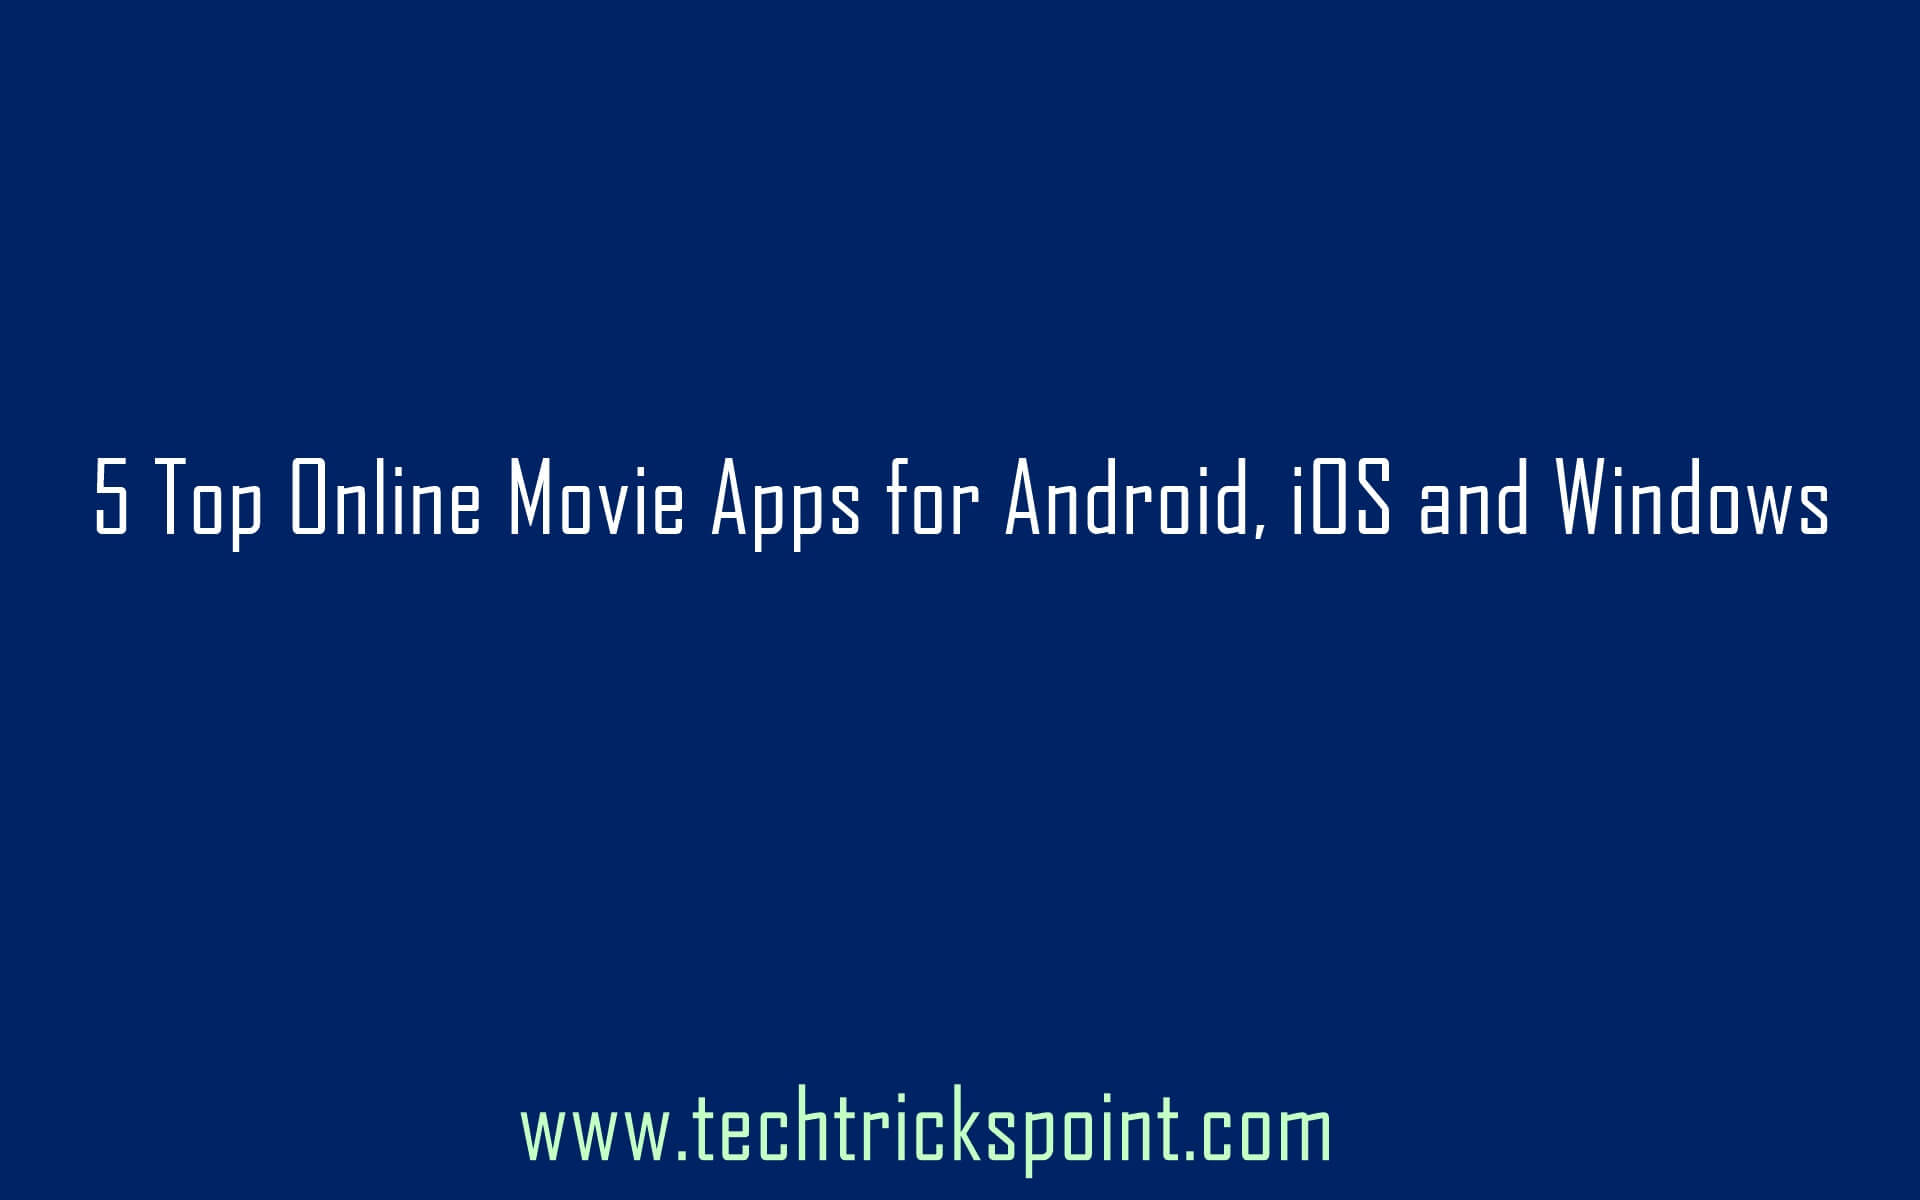 5-top-online-movie-apps-for-android-ios-and-windows